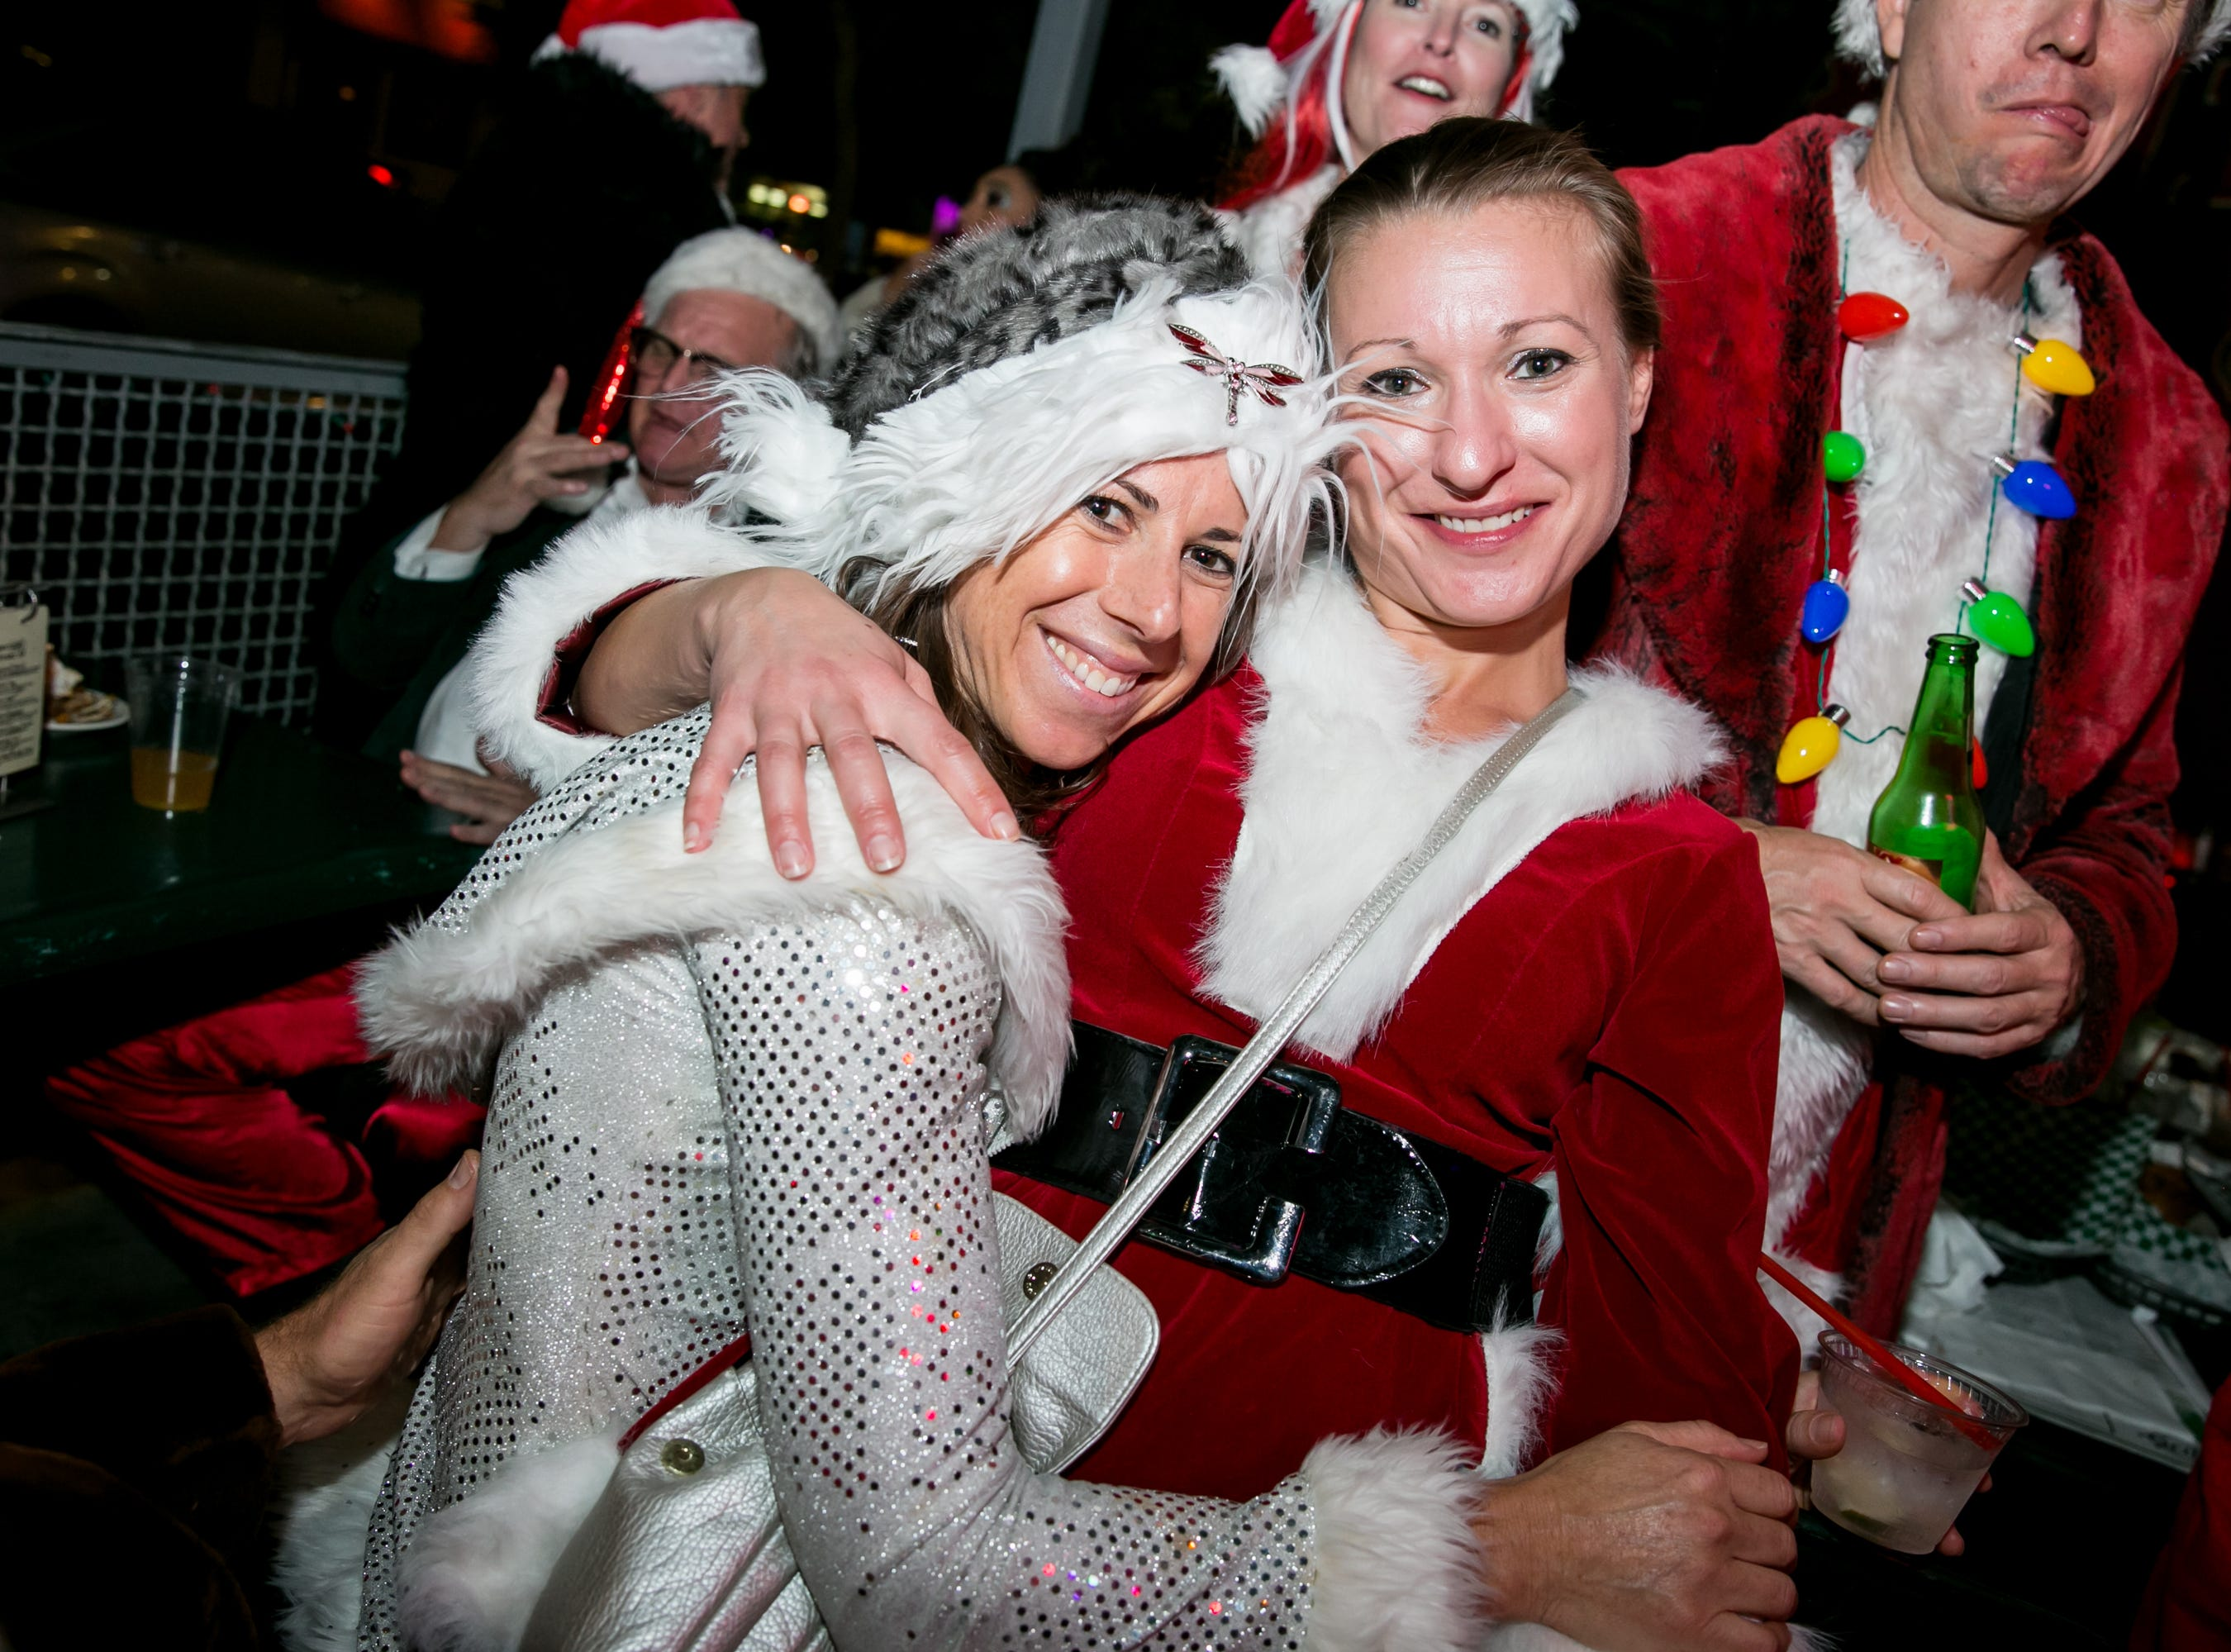 These ladies received some hilarious photo bombs during Santarchy on Saturday, December 8, 2018.